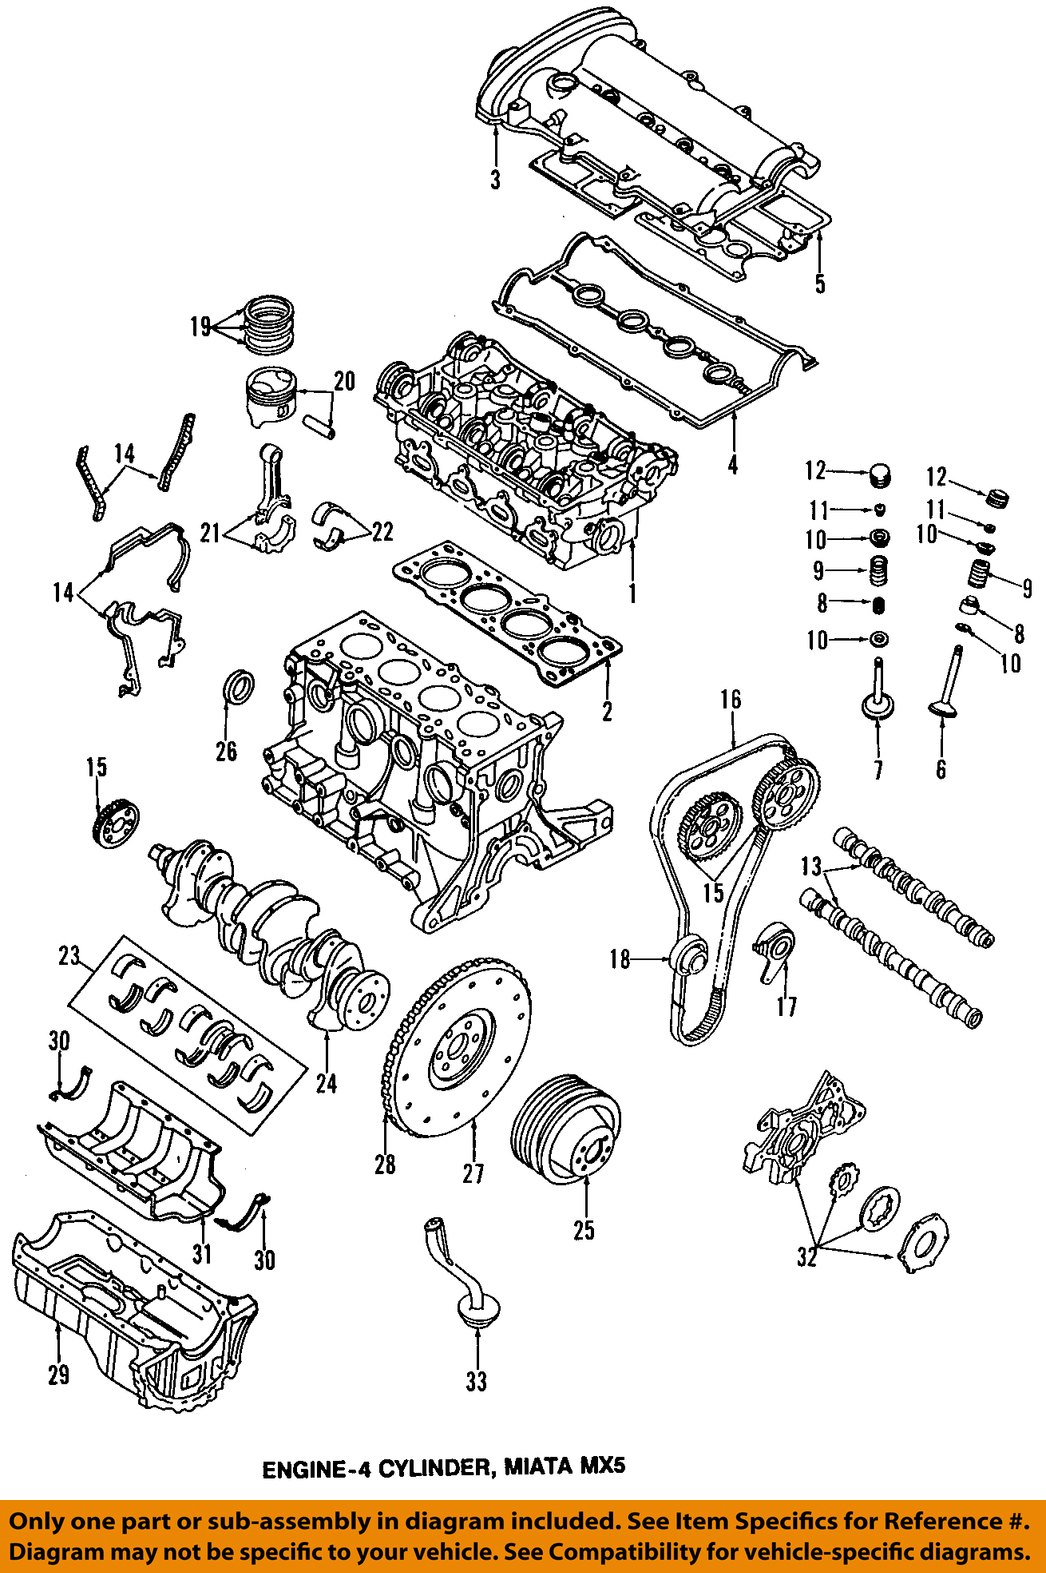 1999mitsubishieclipseenginediagram Diagrams For You To Look At